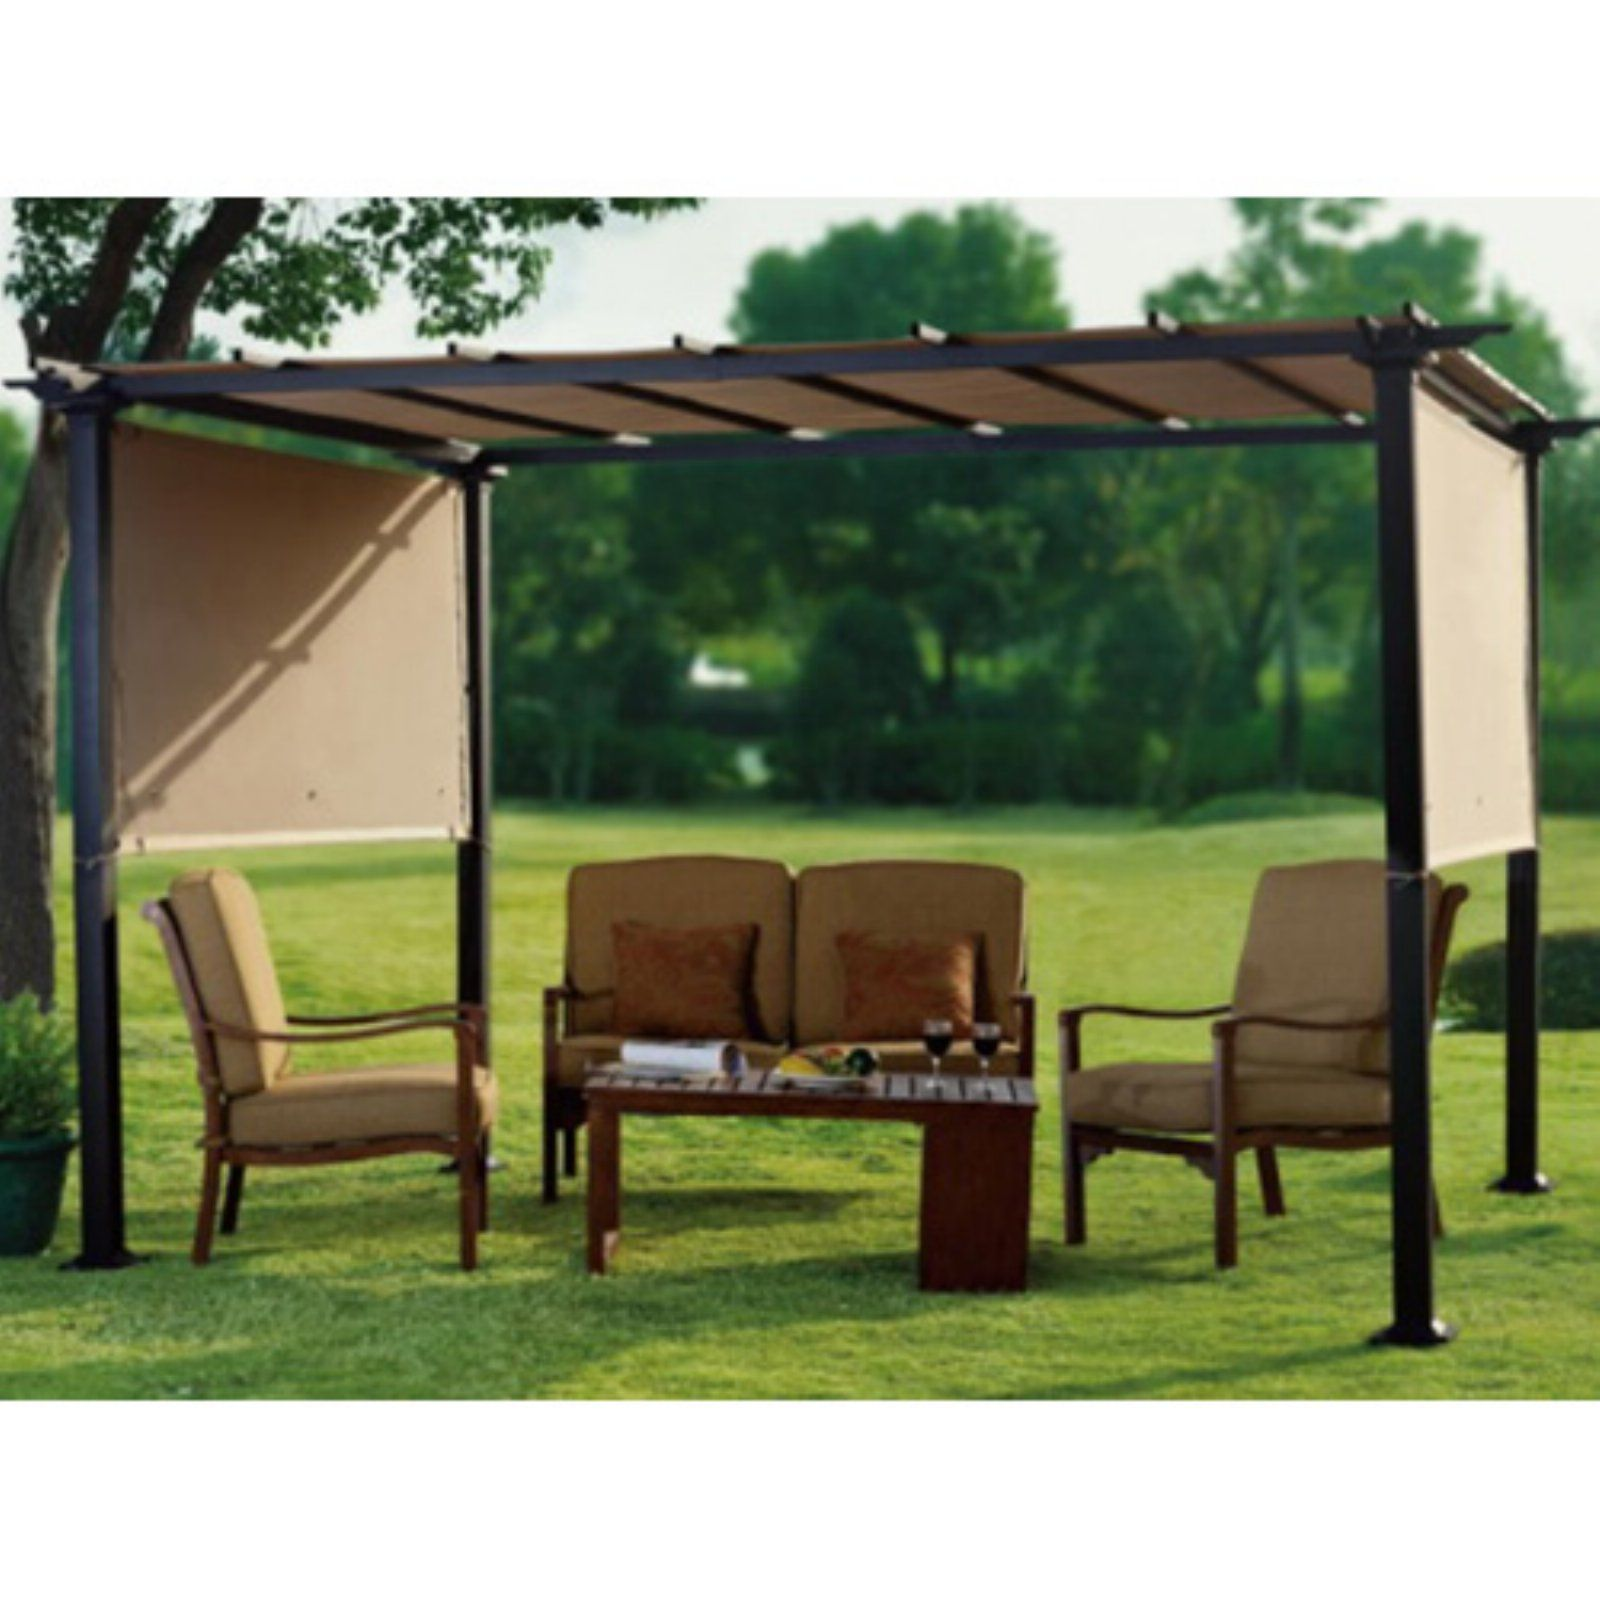 Sunjoy 10 X 8 Ft Replacement Canopy For L Pg080pst 2 Pogola Gazebo In 2020 Outdoor Pergola Pergola Pergola Plans